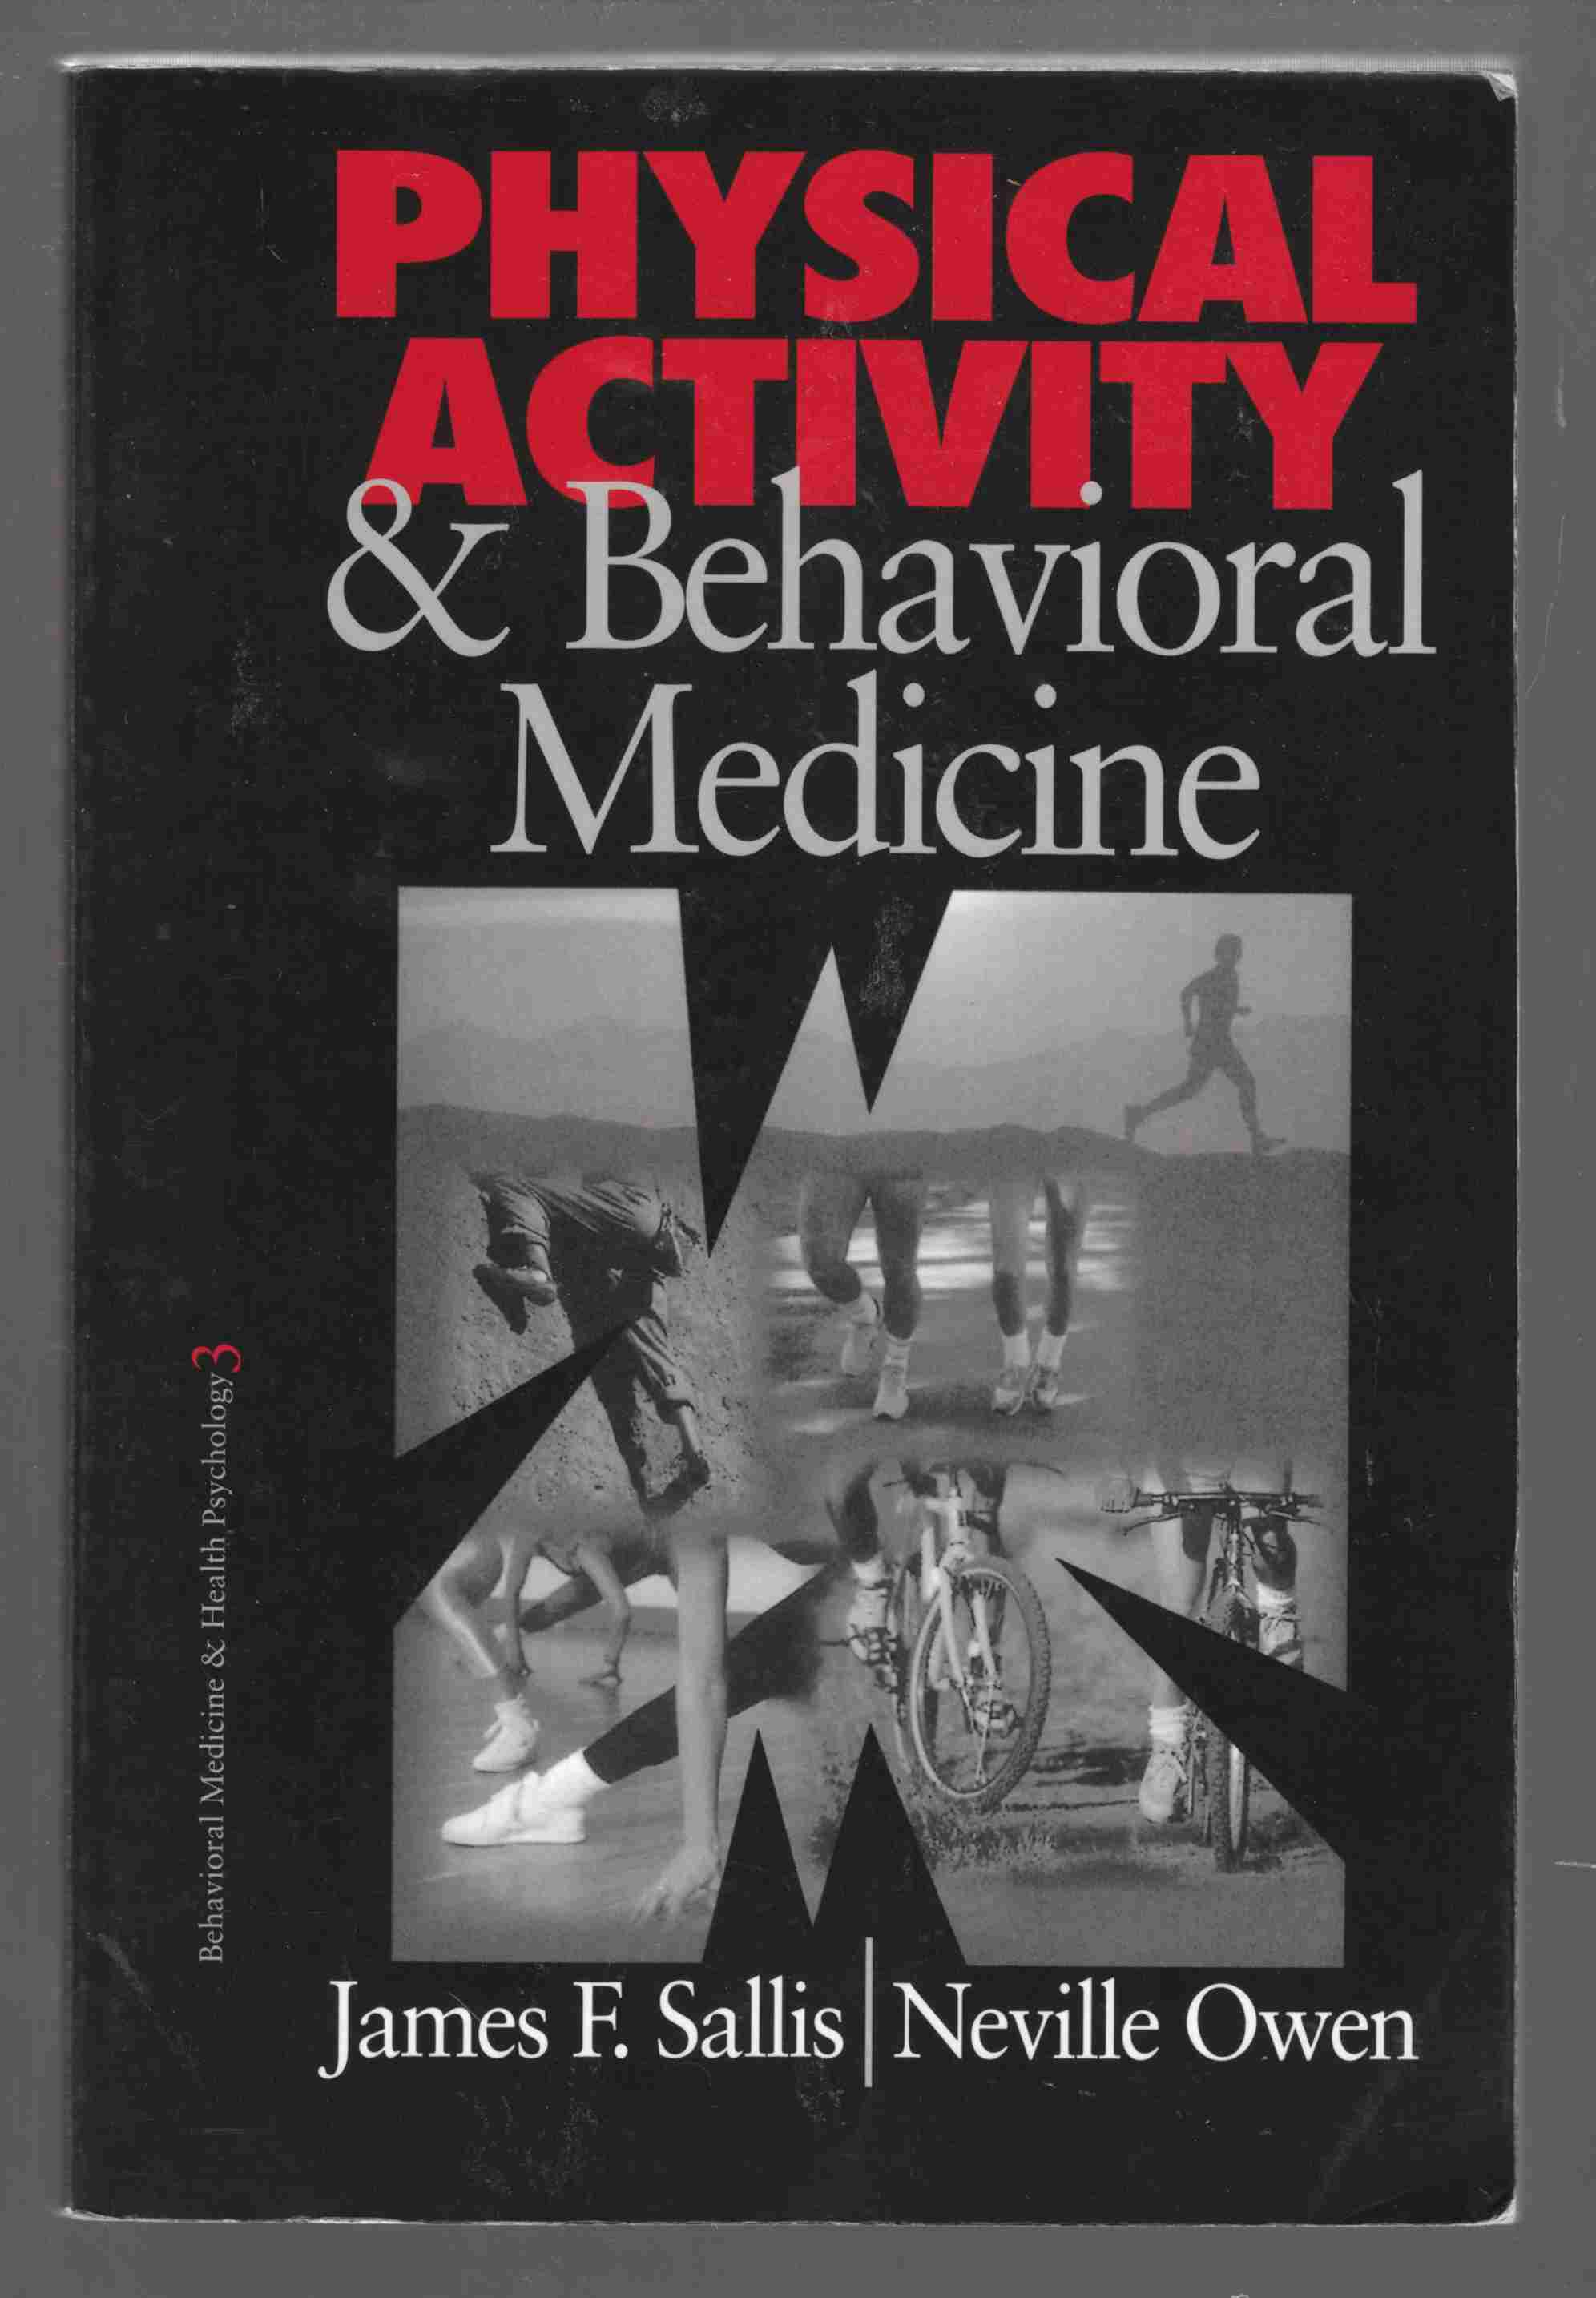 Image for Physical Activity & Behavioural Medicine